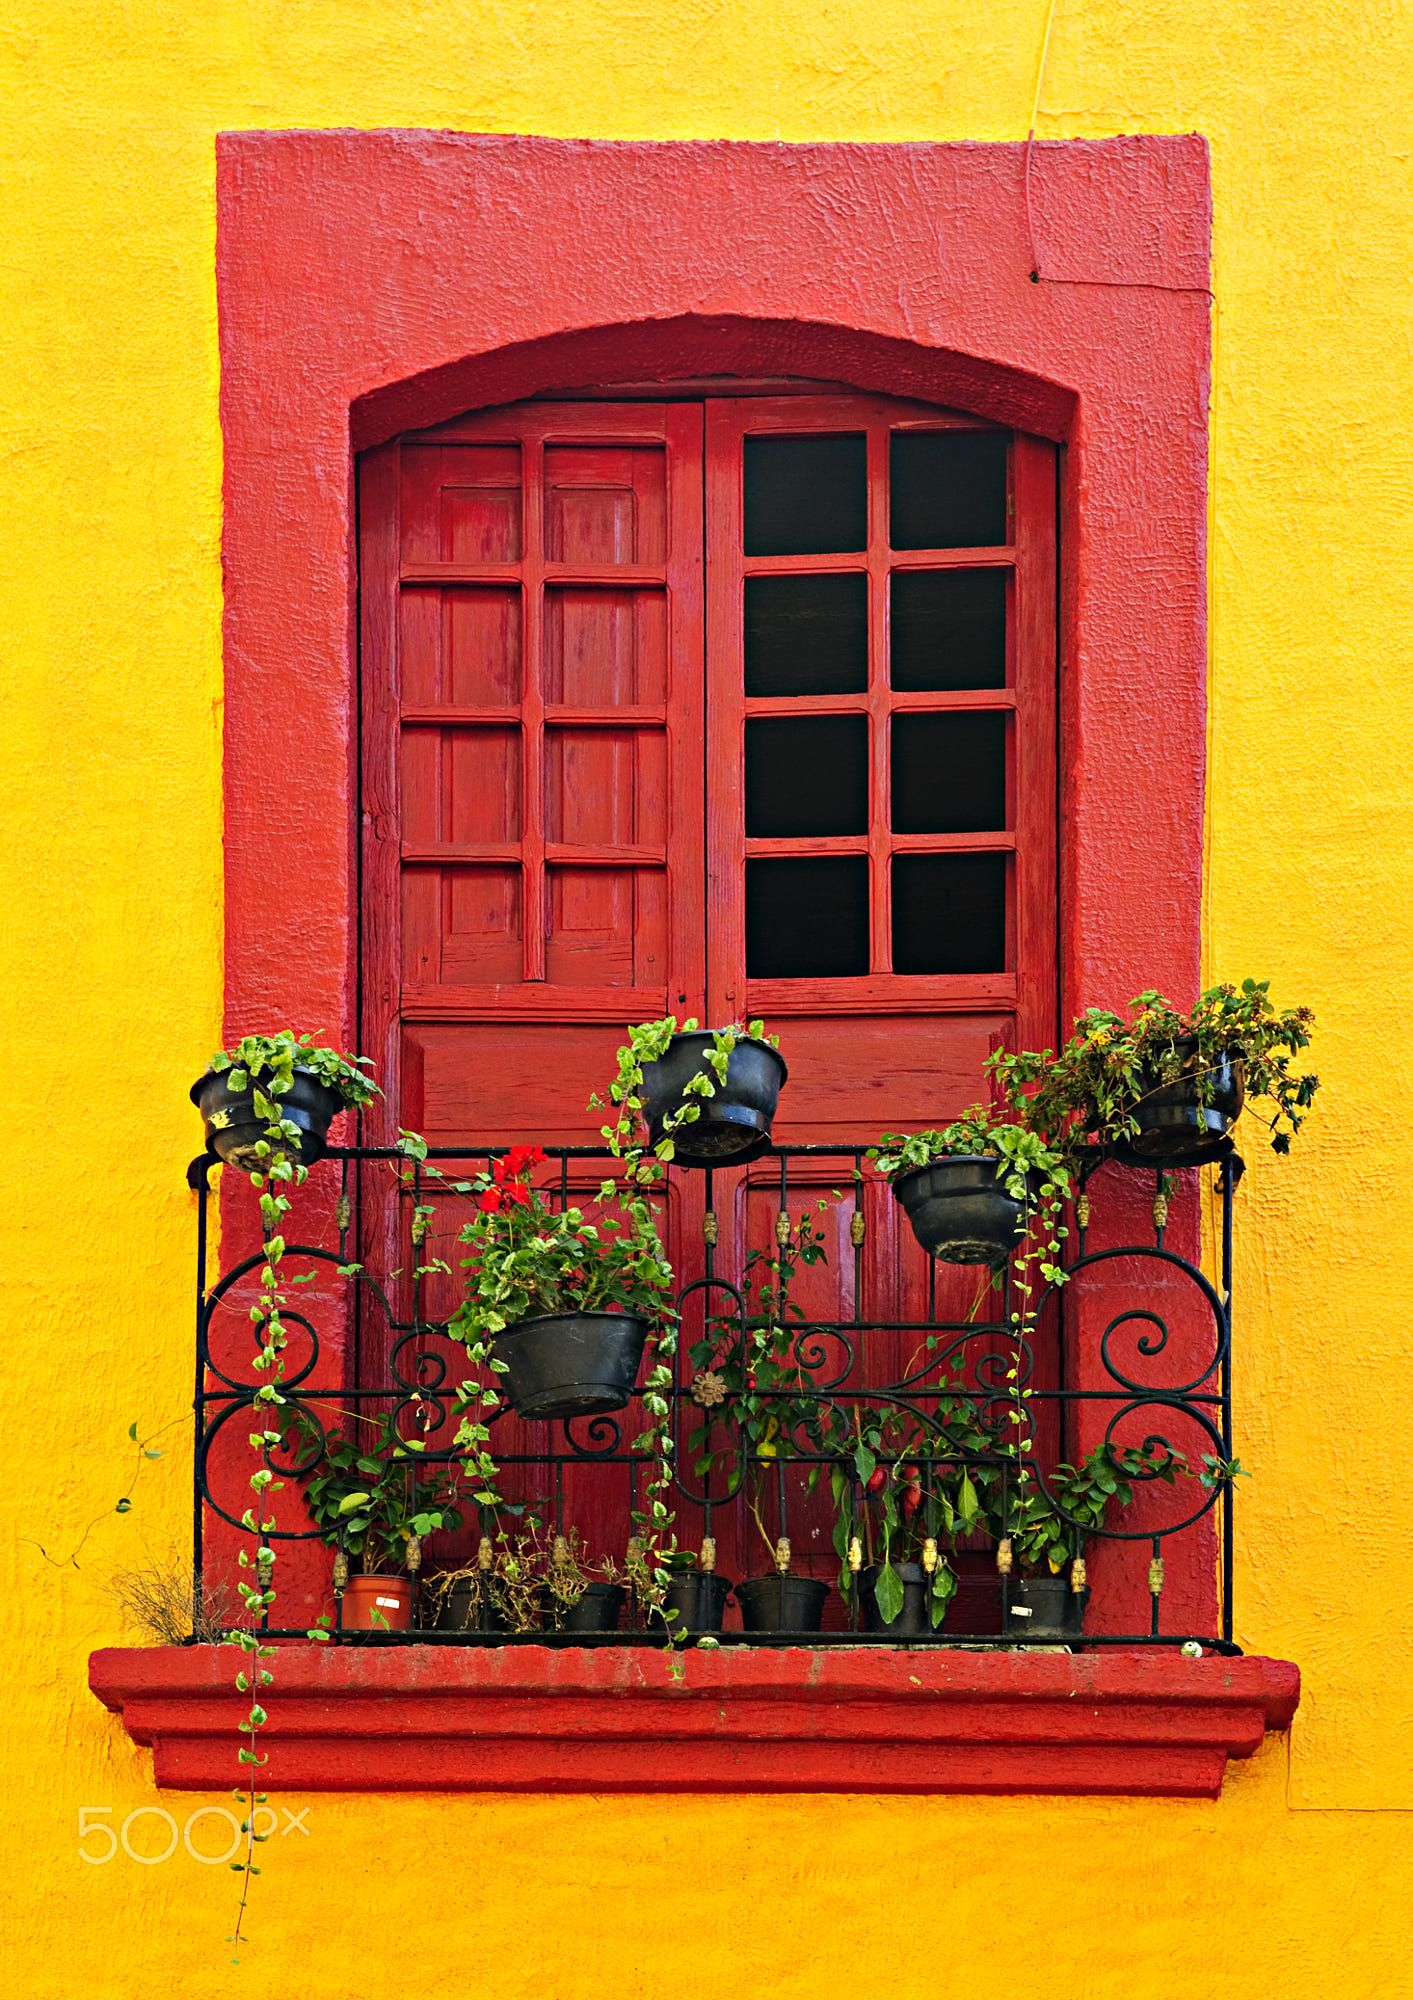 Dipingere Le Porte Di Casa red painted window with plants and wrought iron railing in